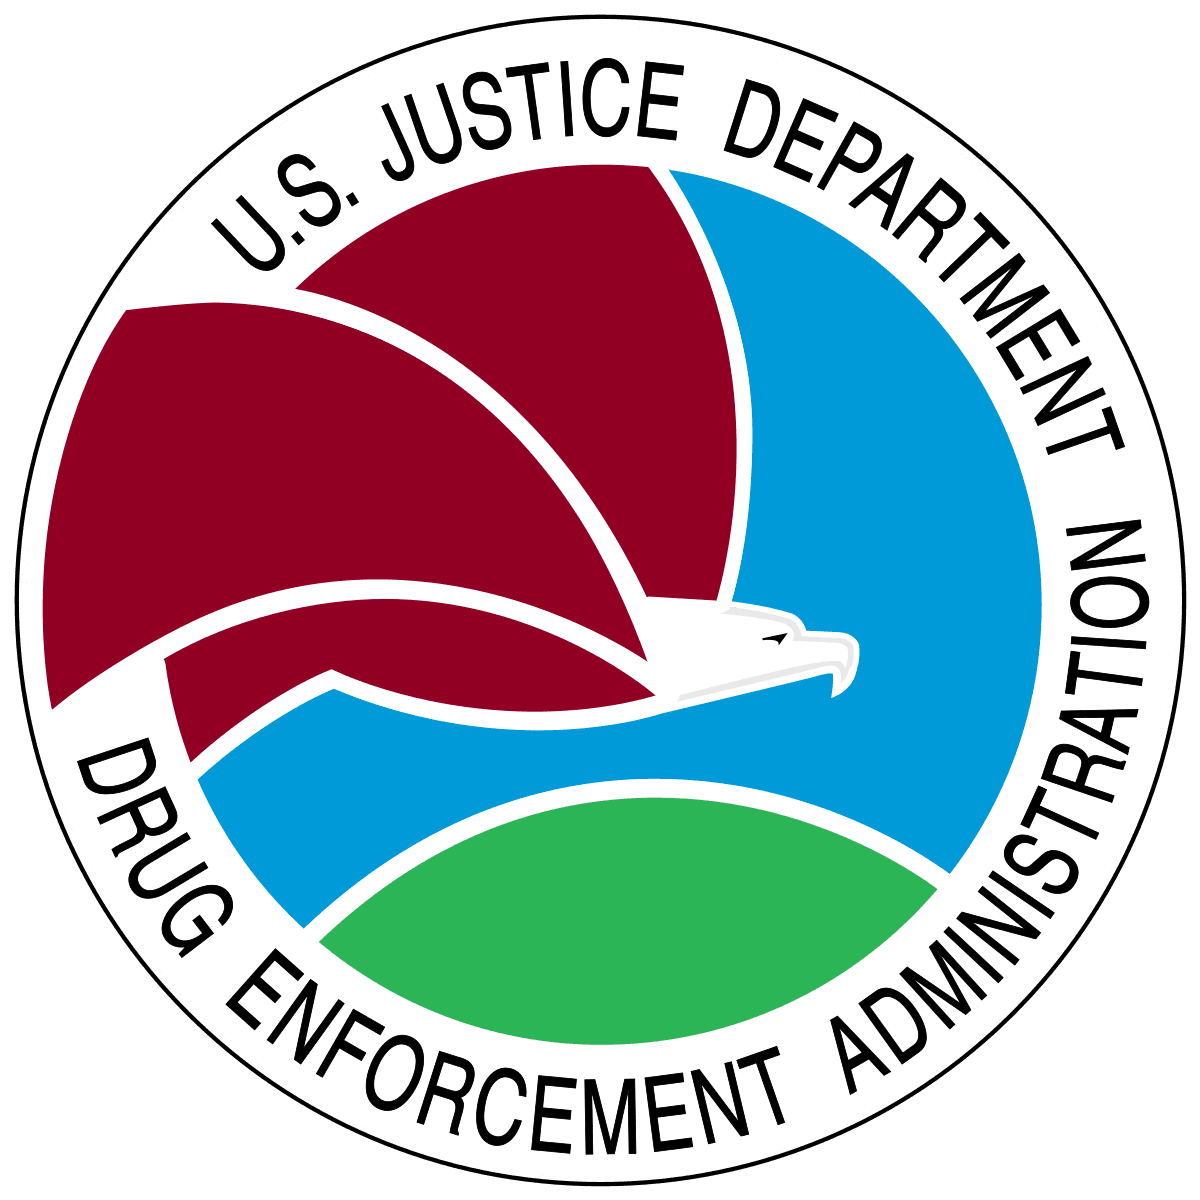 U.S. Justice Department Drug Enforcement Administration Logo